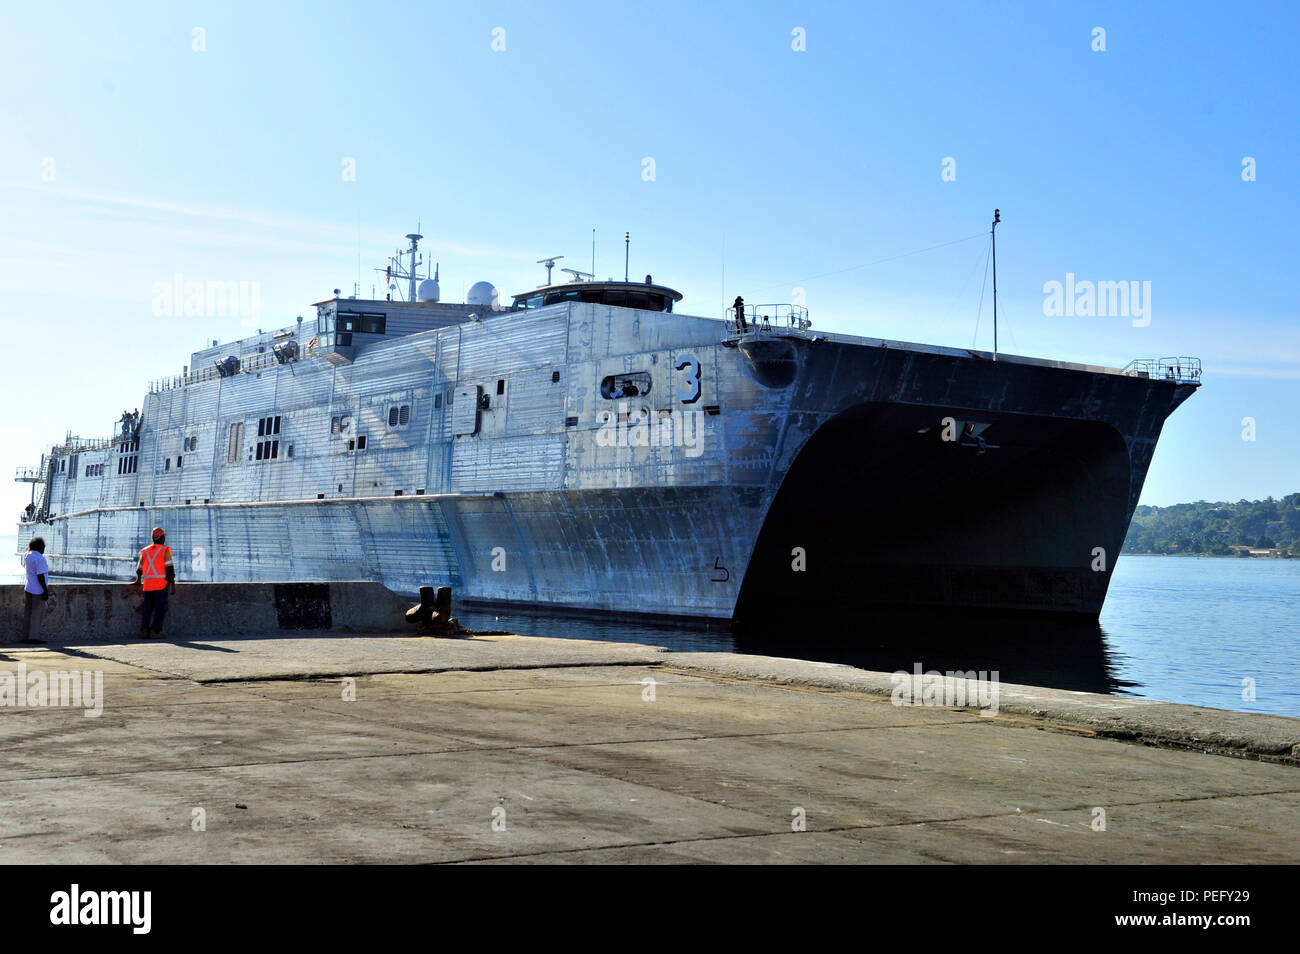 150817-N-YF678-017 DA NANG, Vietnam (Aug. 17, 2015) – The Military Sealift Command joint high speed vessel USNS Millinocket (JHSV 3) arrives in Vietnam, Aug. 17. Vietnam is the fifth stop for Millinocket and embarked Task Force Forager. Millinocket and embarked Task Force Forager are serving as the secondary platform for Pacific Partnership, led by an expeditionary command element from the Navy's 30th Naval Construction Regiment (30 NCR) from Port Hueneme, Calif. Now in its 10th iteration, Pacific Partnership is the largest annual multilateral humanitarian assistance and disaster relief prepar - Stock Image